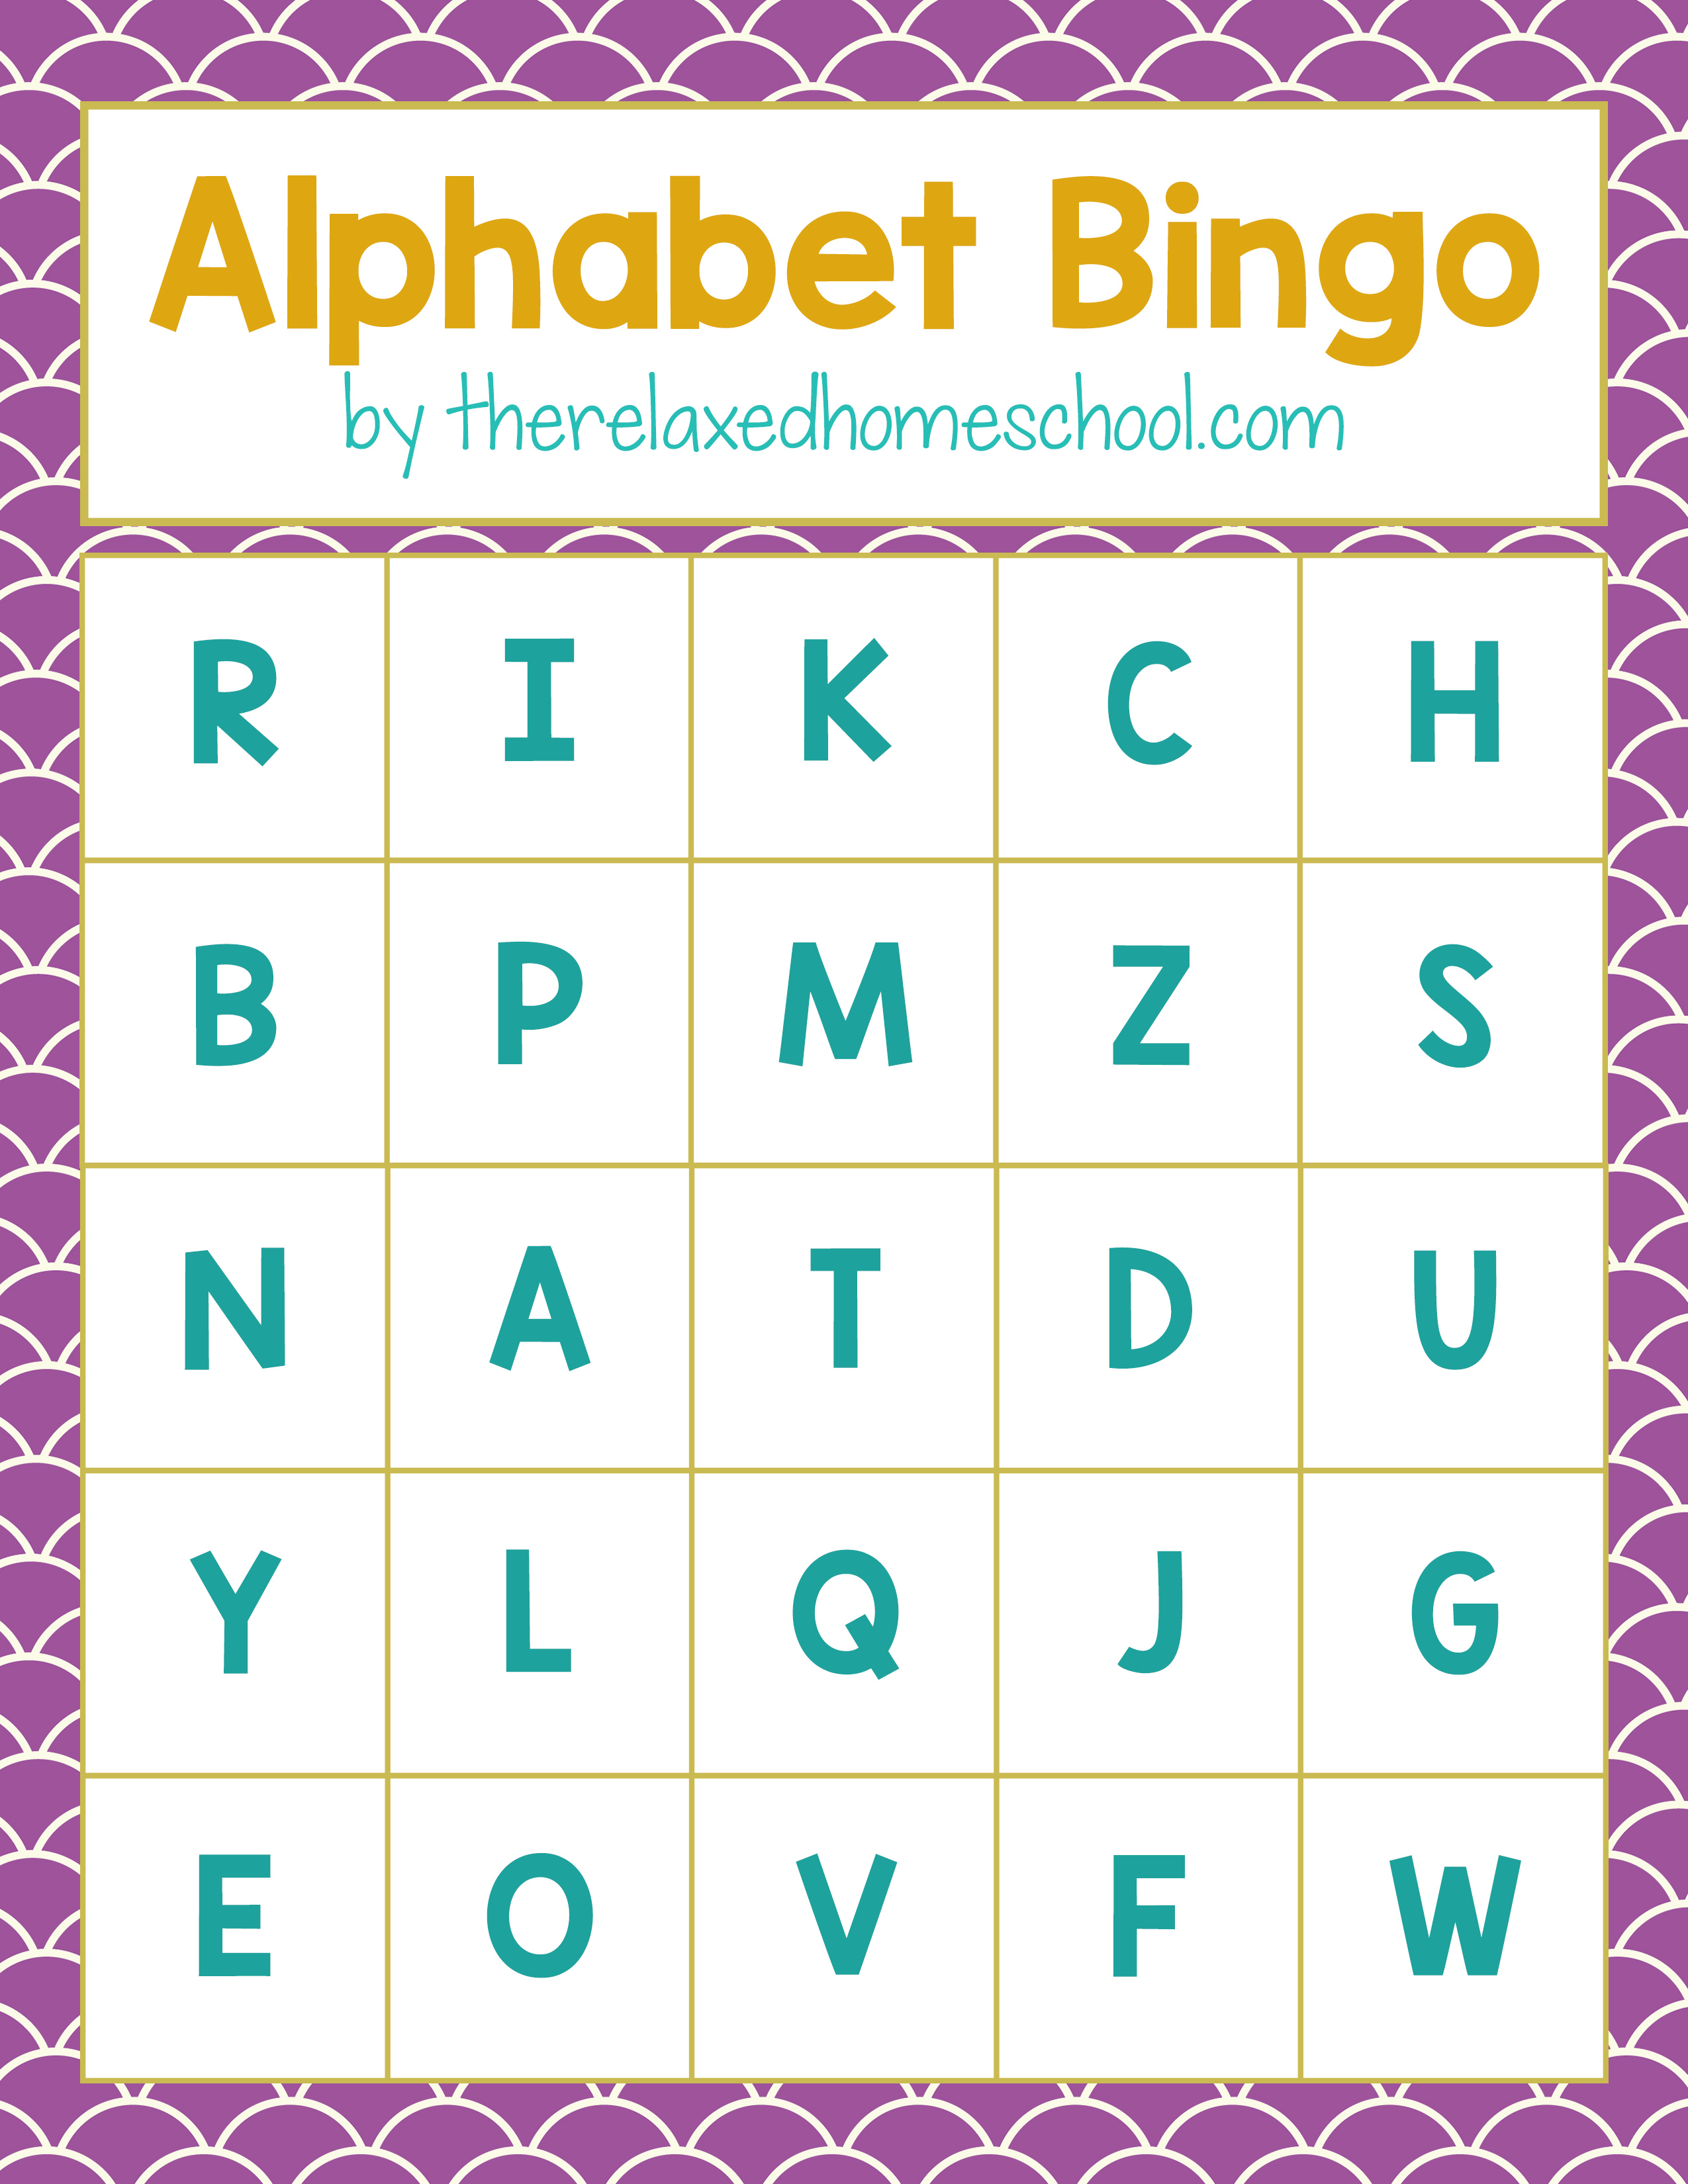 Free Printable! Alphabet Letters Bingo Game - Download here!